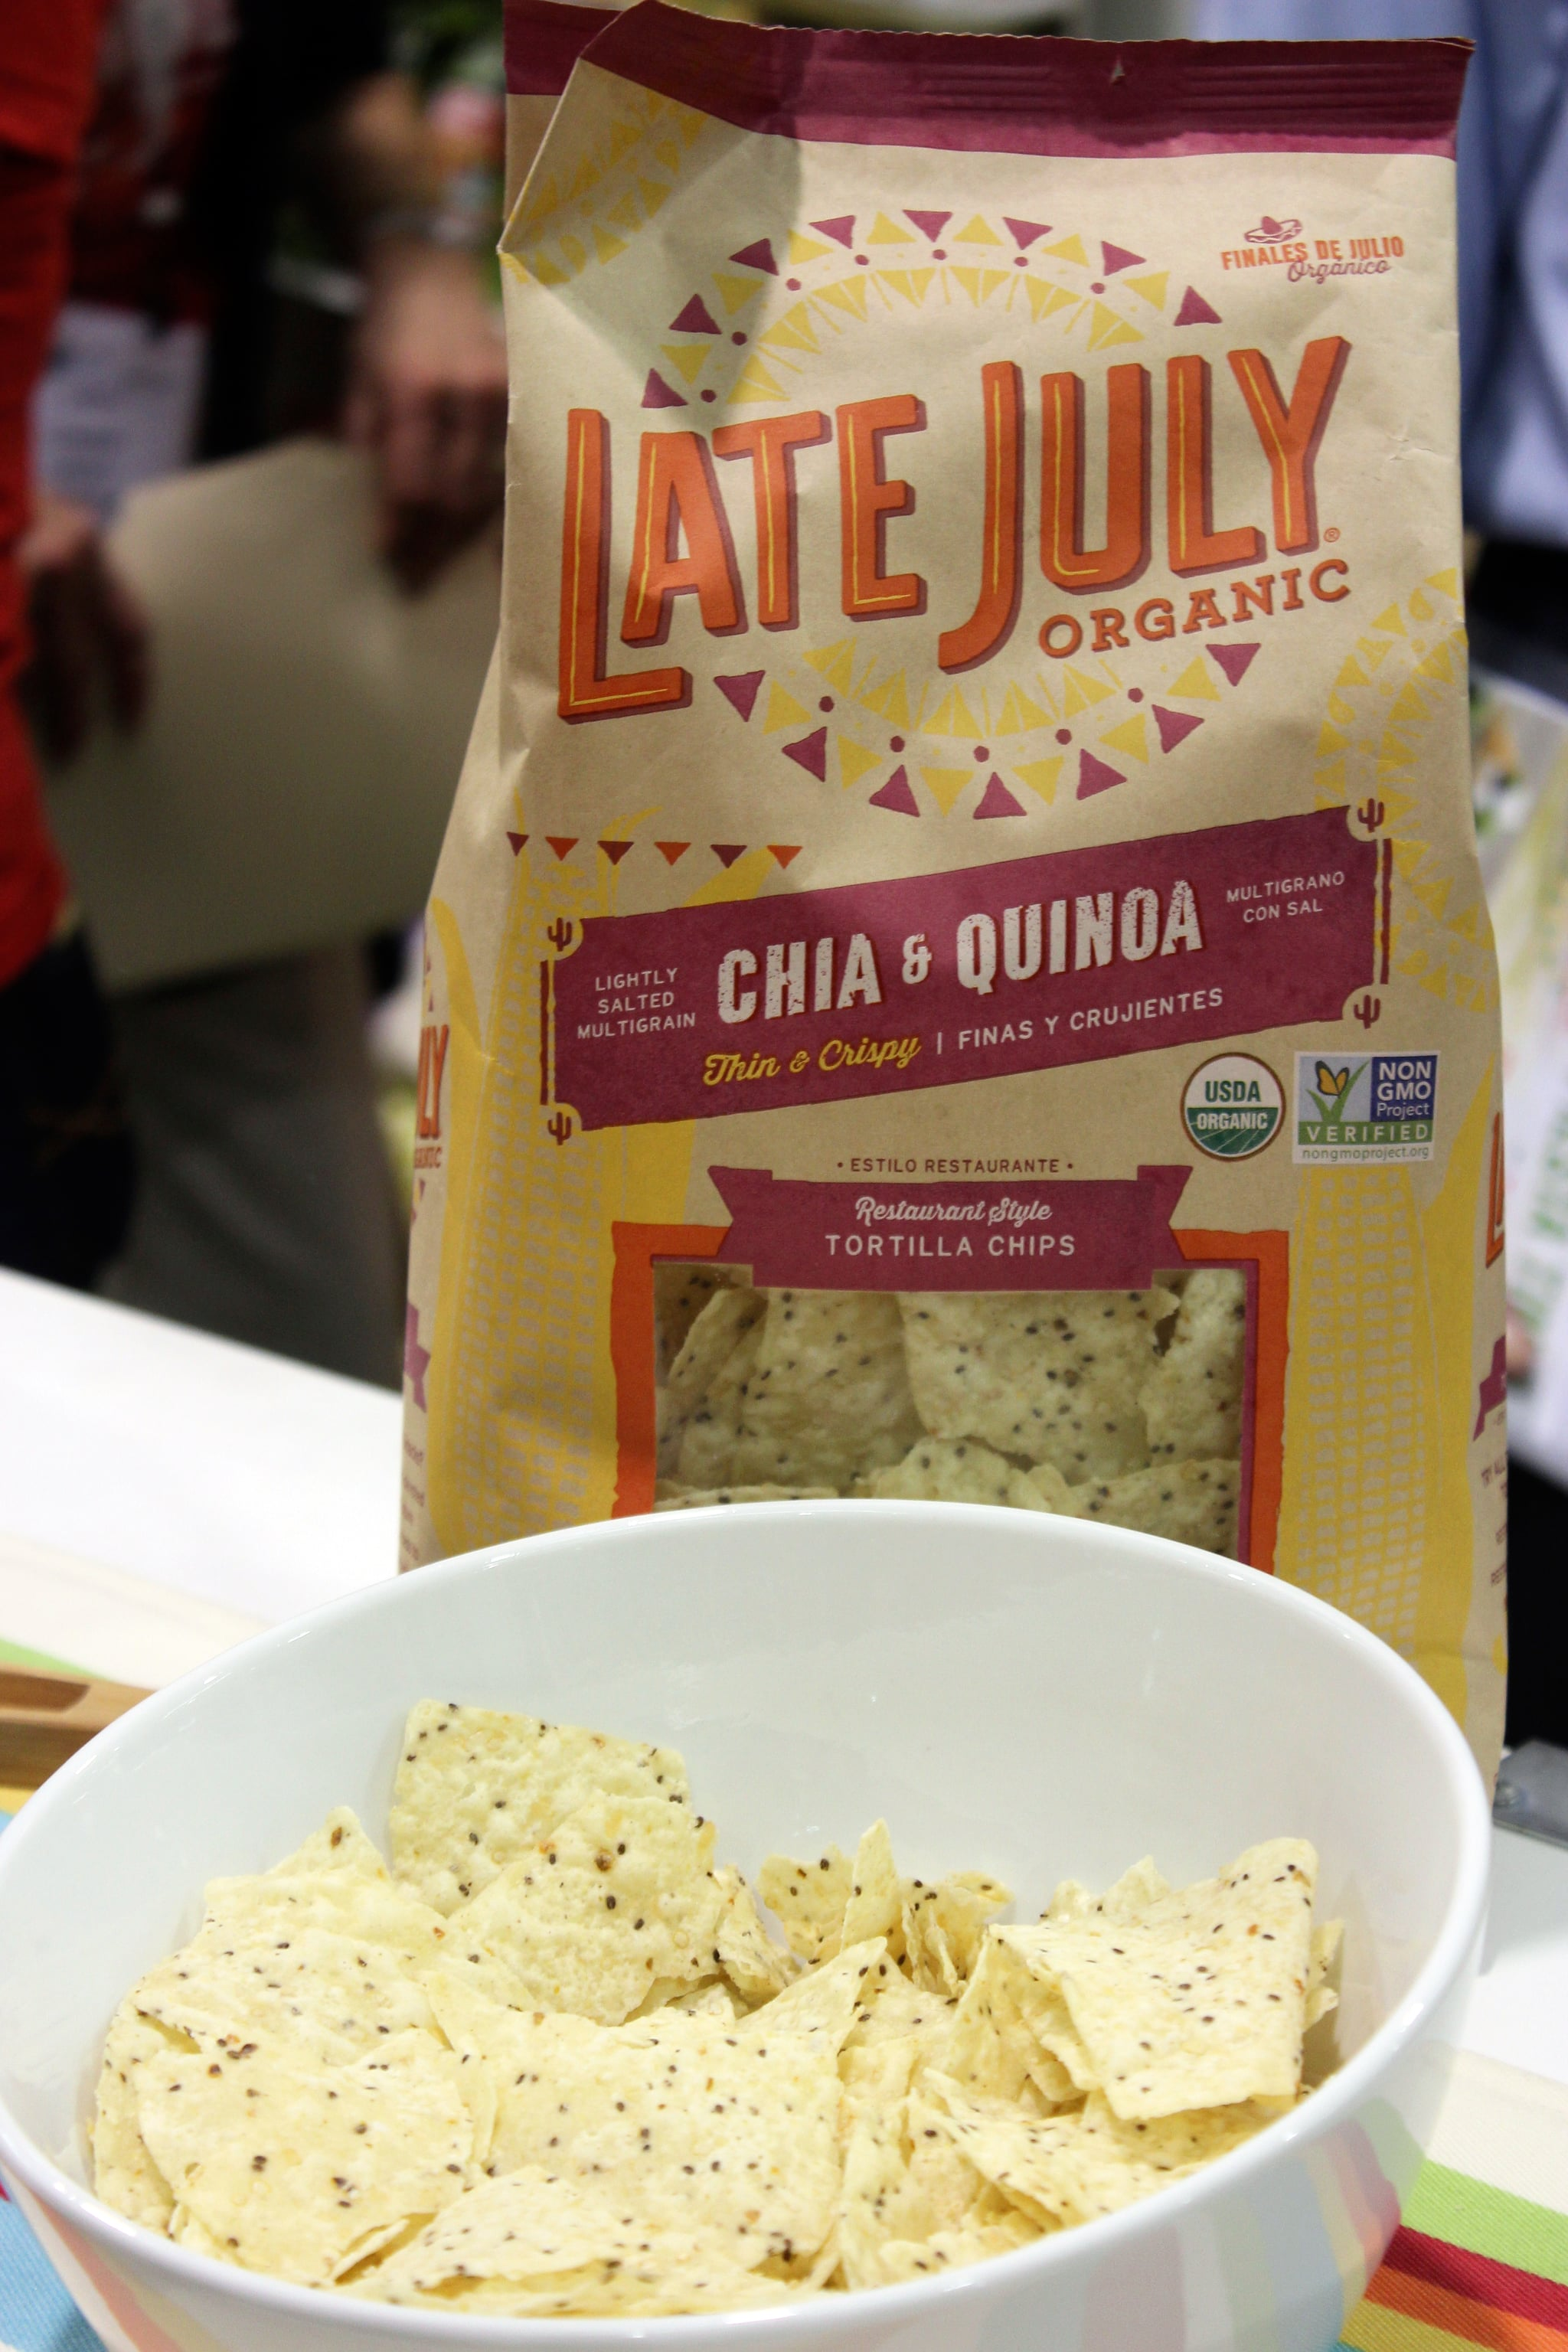 Late July Chia and Quiona Chips